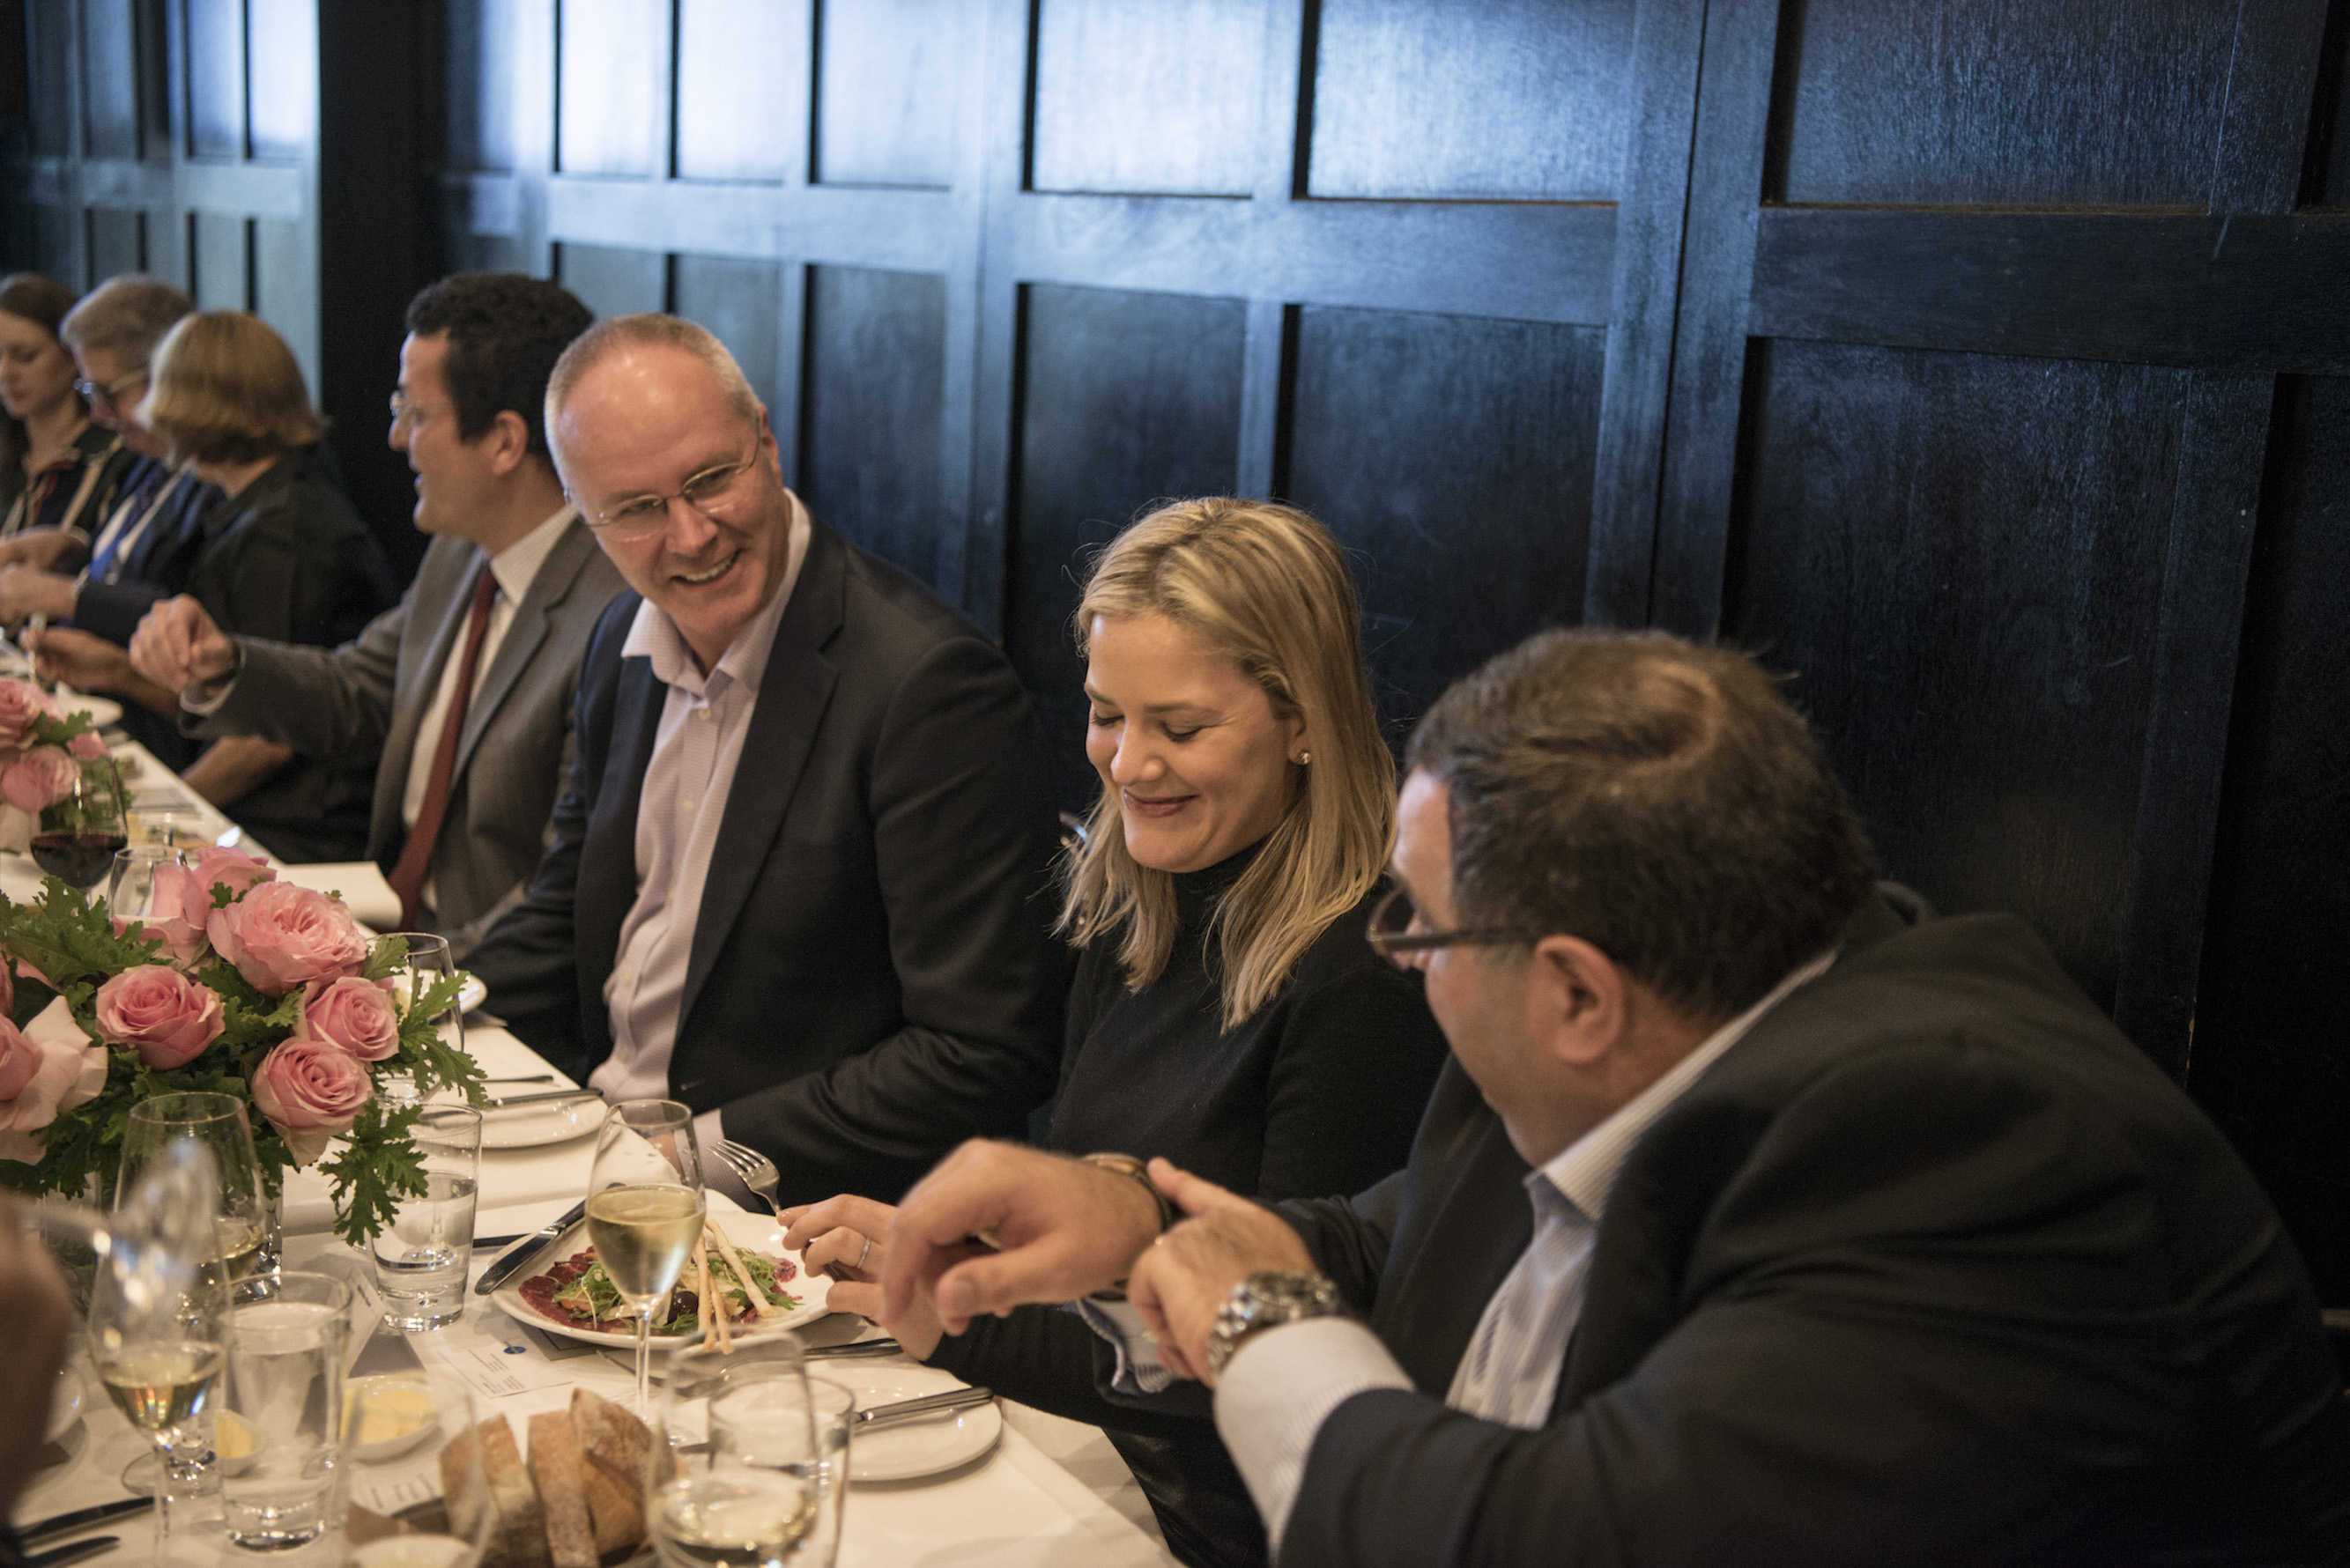 Fairfax Media Brand Solutions and Client Development Director Michael Grenenger (left) talks to guests enjoying the AFR Watch issue launch at The Tea Room at The European. (Photo by Josh Robenstone Fairfax Media